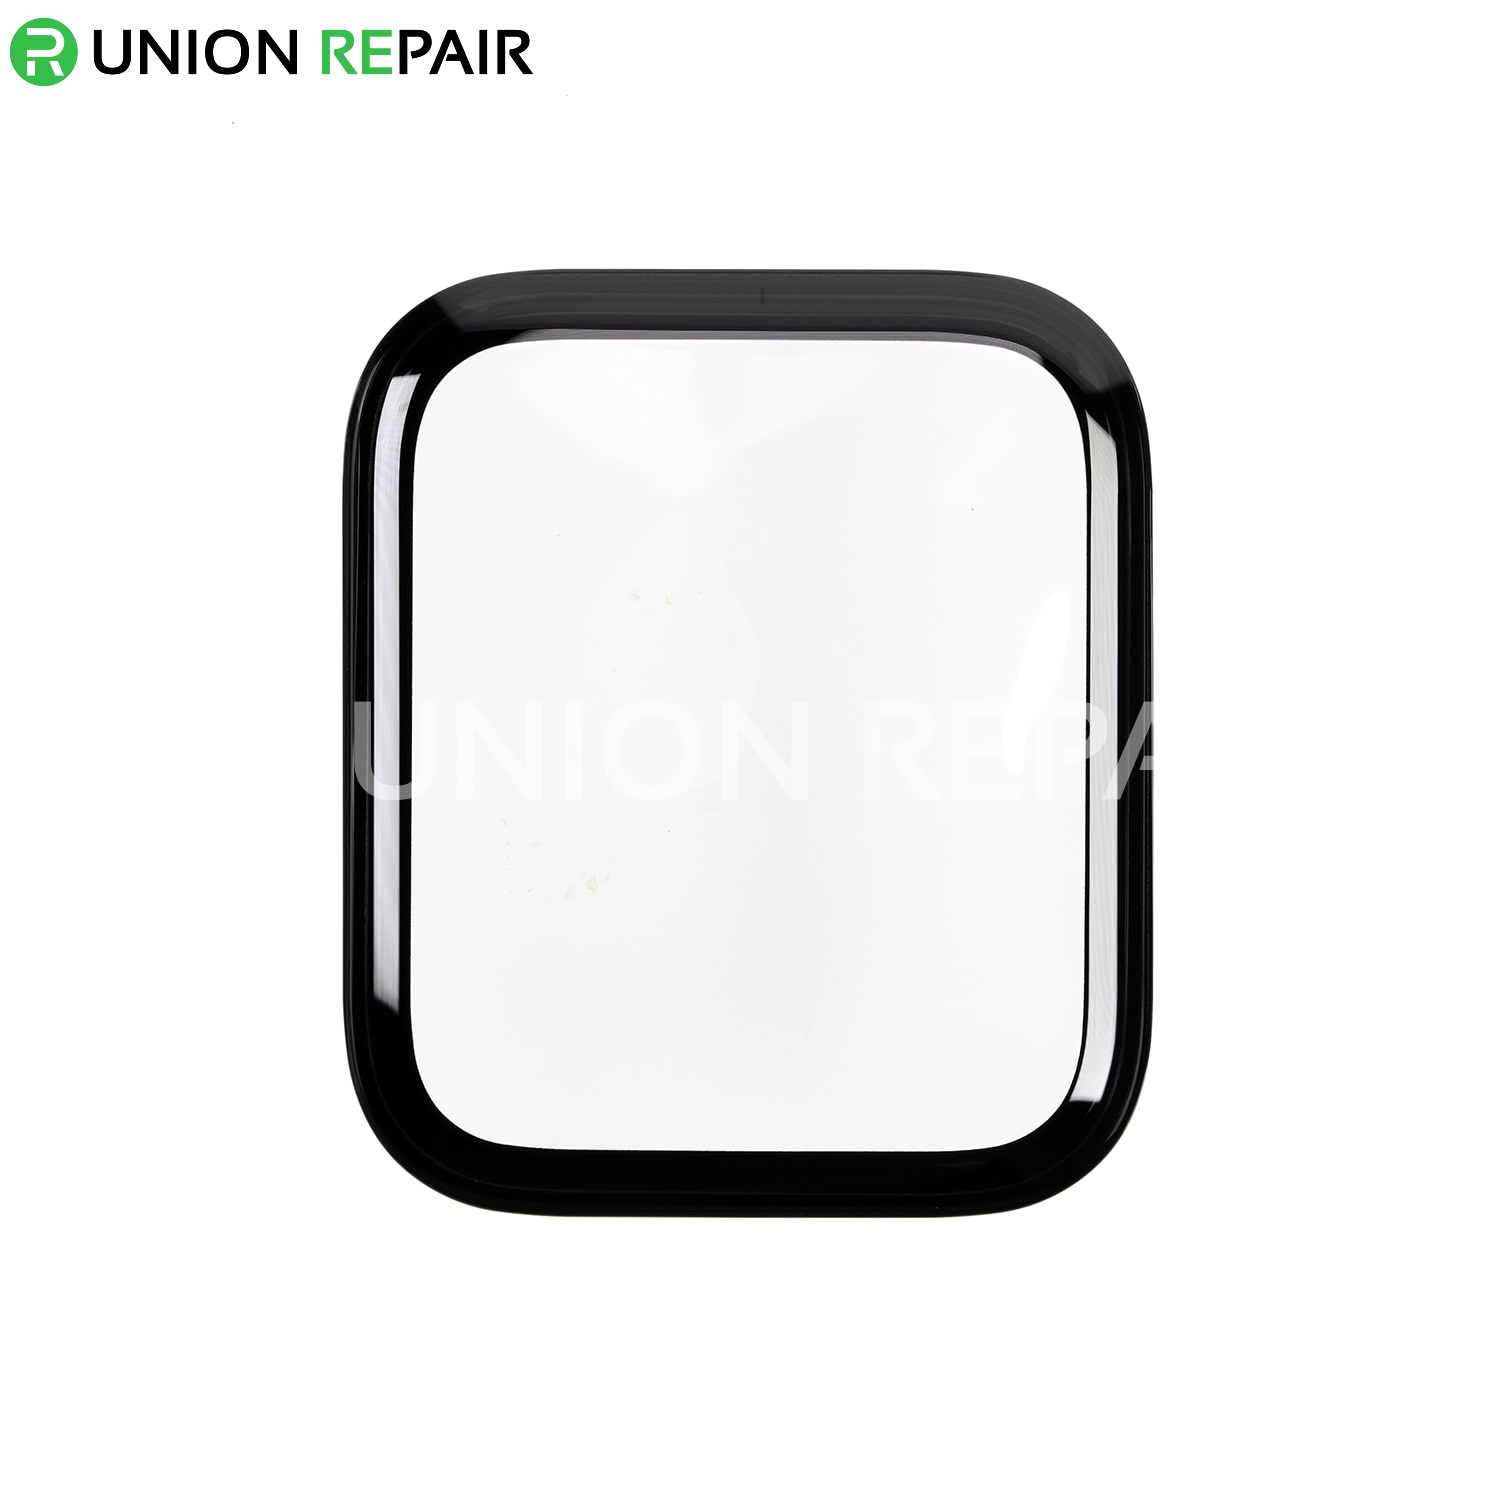 Replacement For Apple Watch S4/S5/SE/S6 Front Cover Glass 44mm